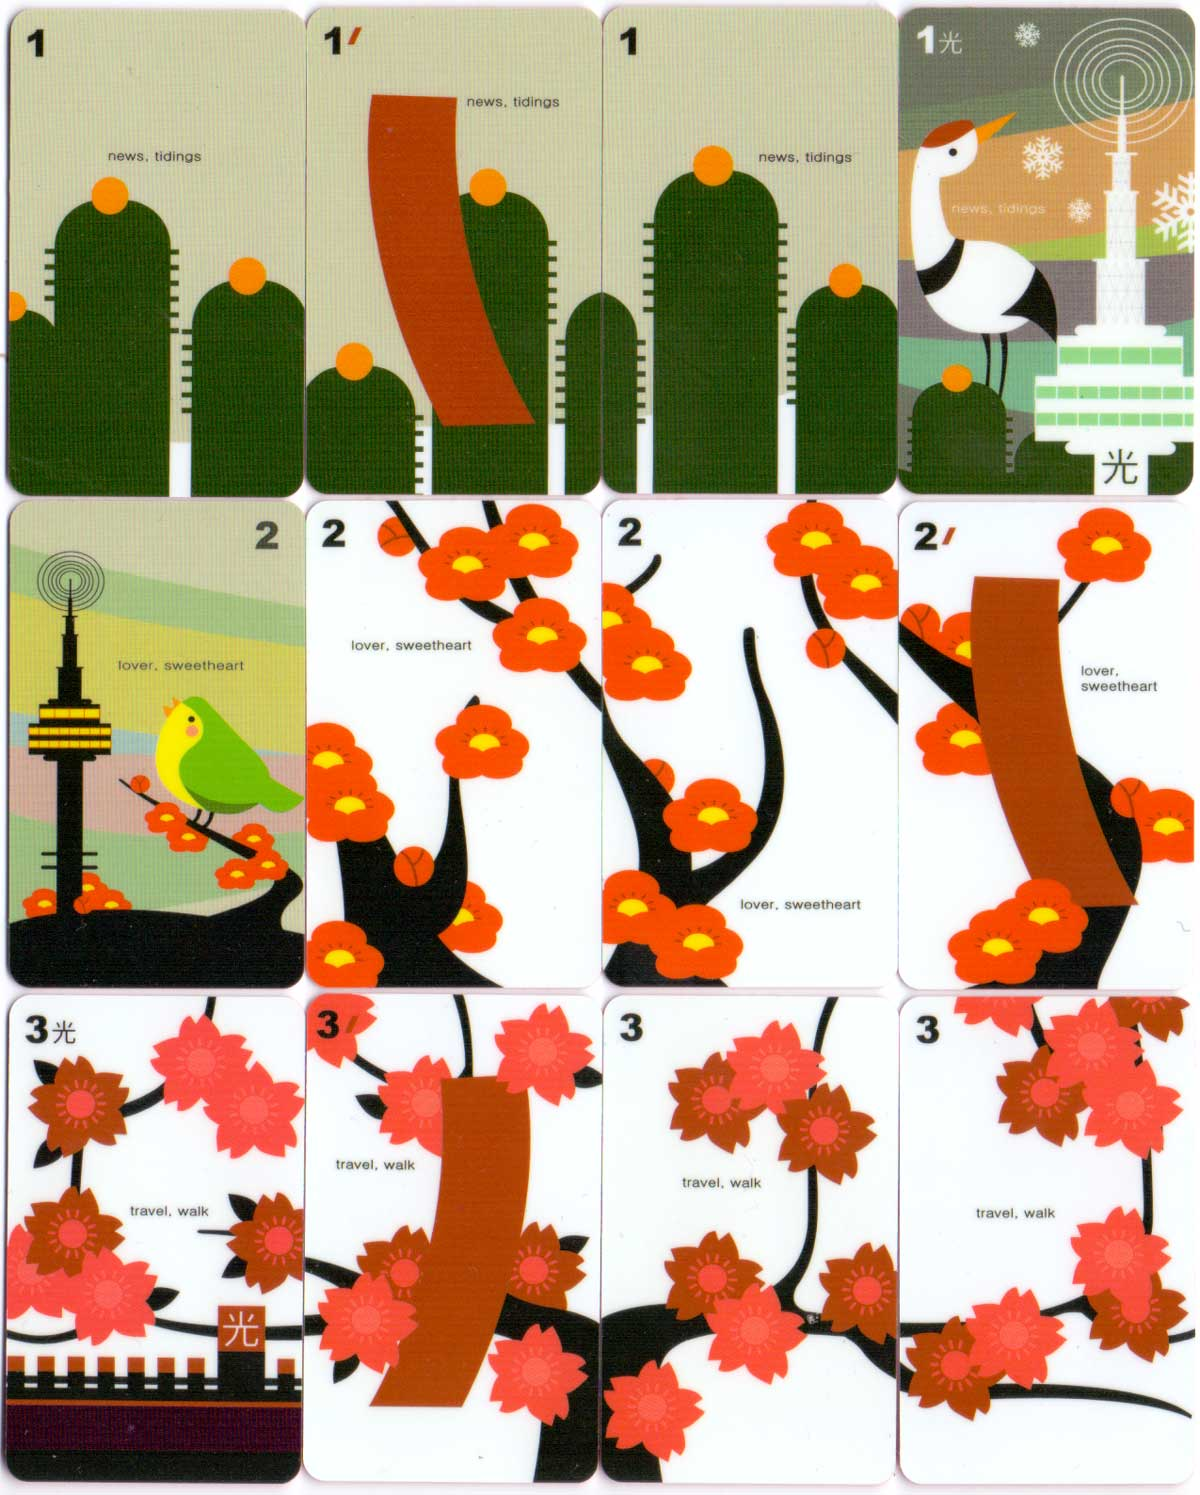 Seoul Tower Hwatu published by Miracle Fish ©2008